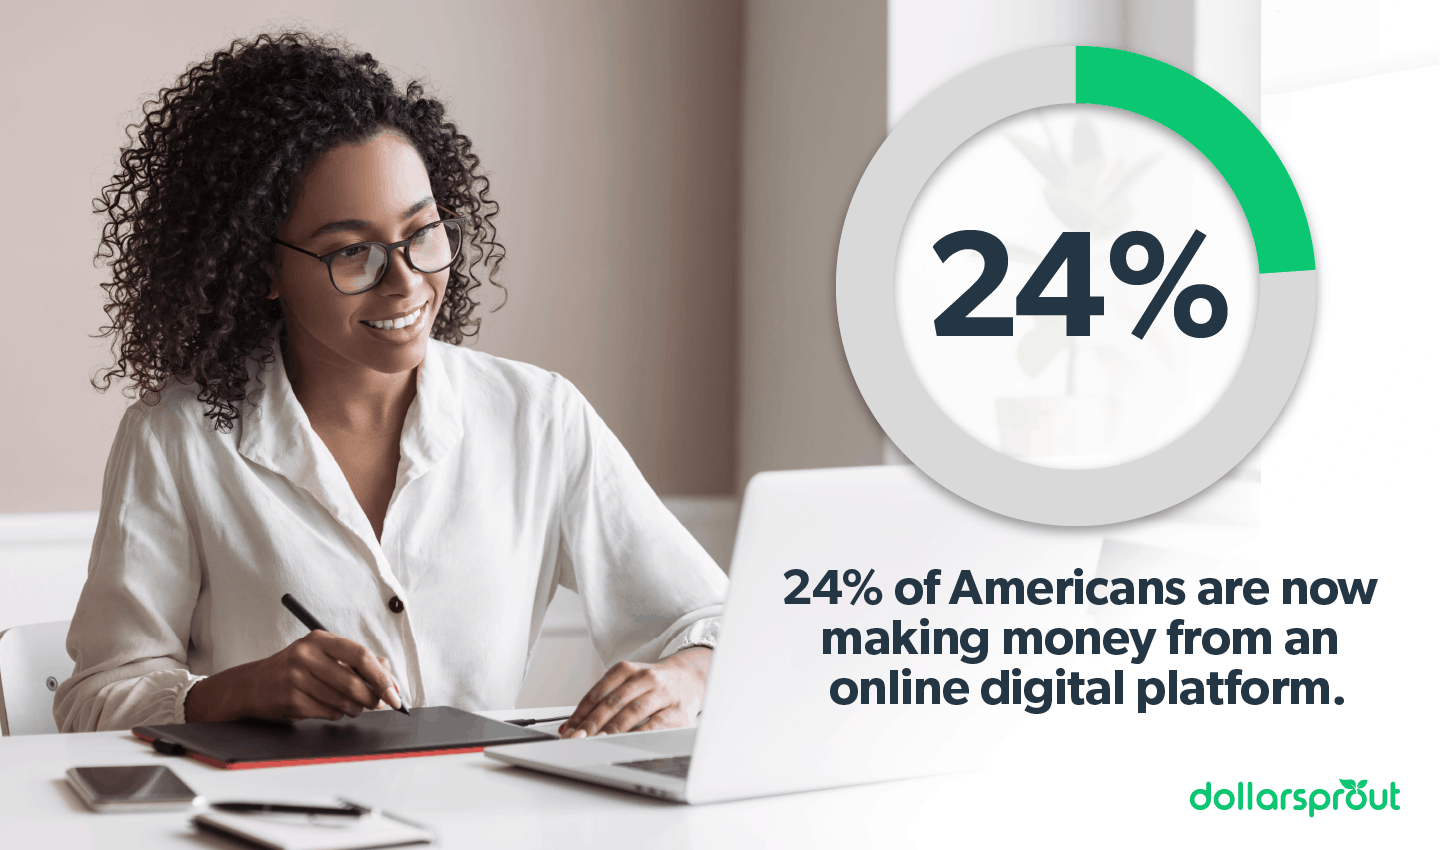 Percent of Americans making money online